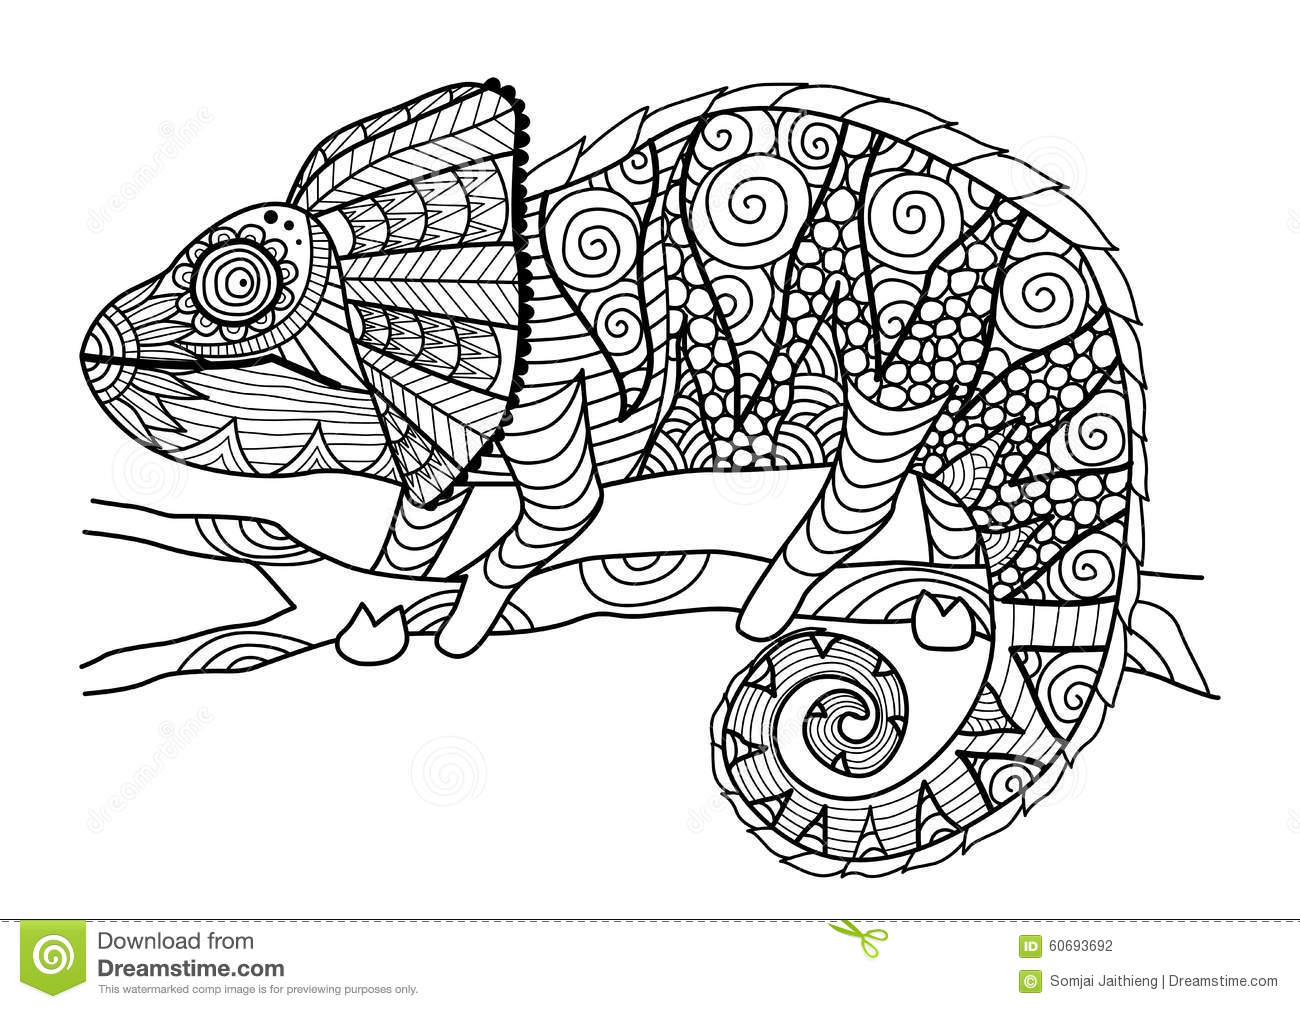 The coloring book tattoo - Hand Drawn Chameleon Zentangle Style For Coloring Book Shirt Design Effect Logo Tattoo